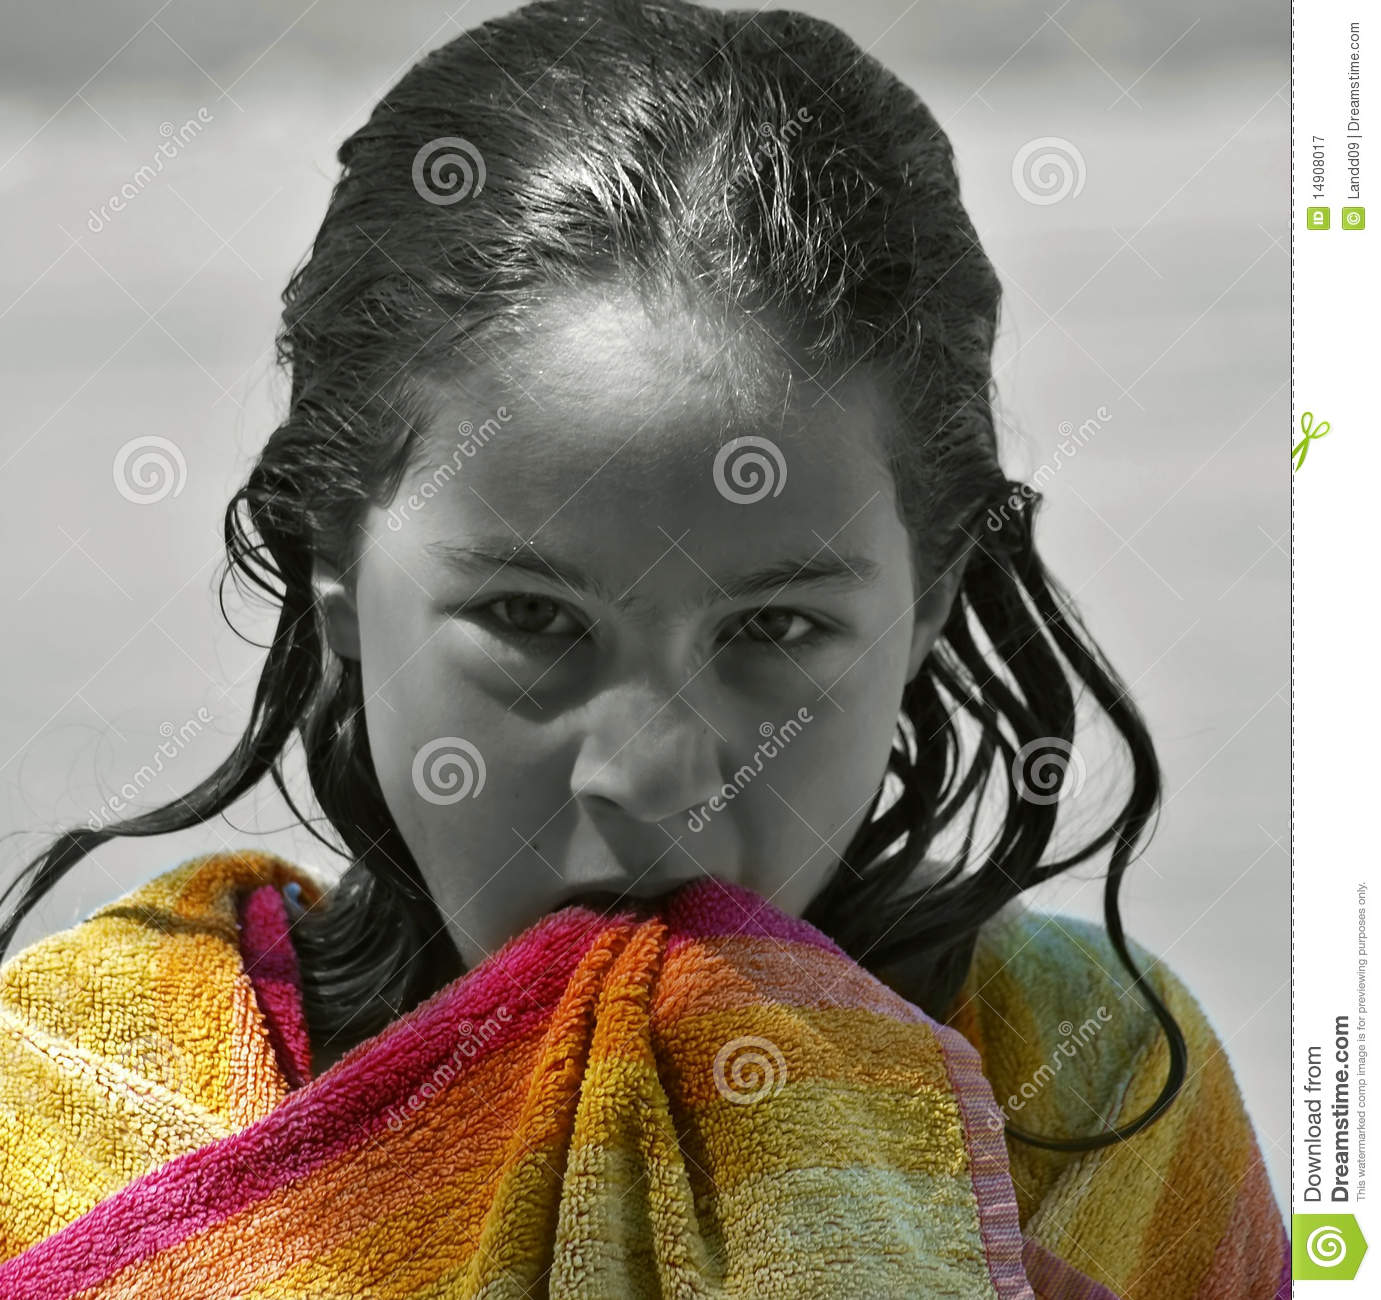 Angry Wet Girl Royalty Free Stock Photography - Image ...